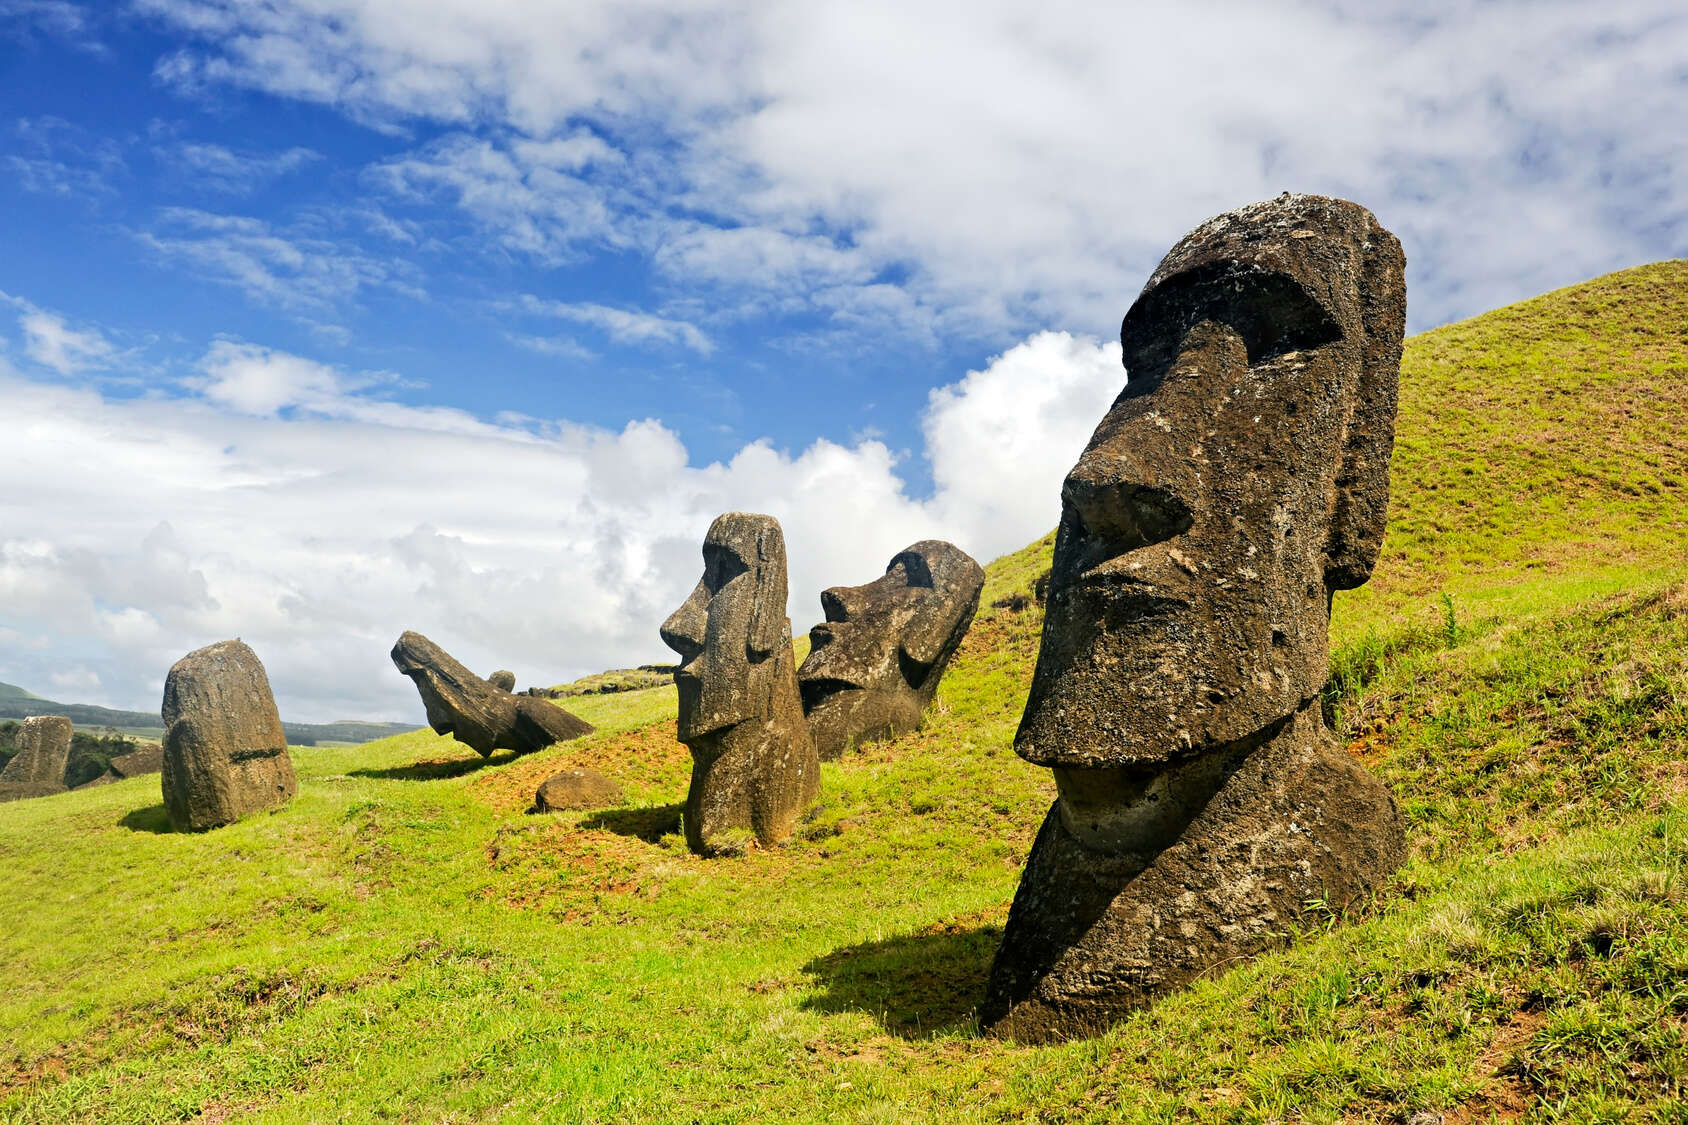 Easter Island: A Bucket List Destination